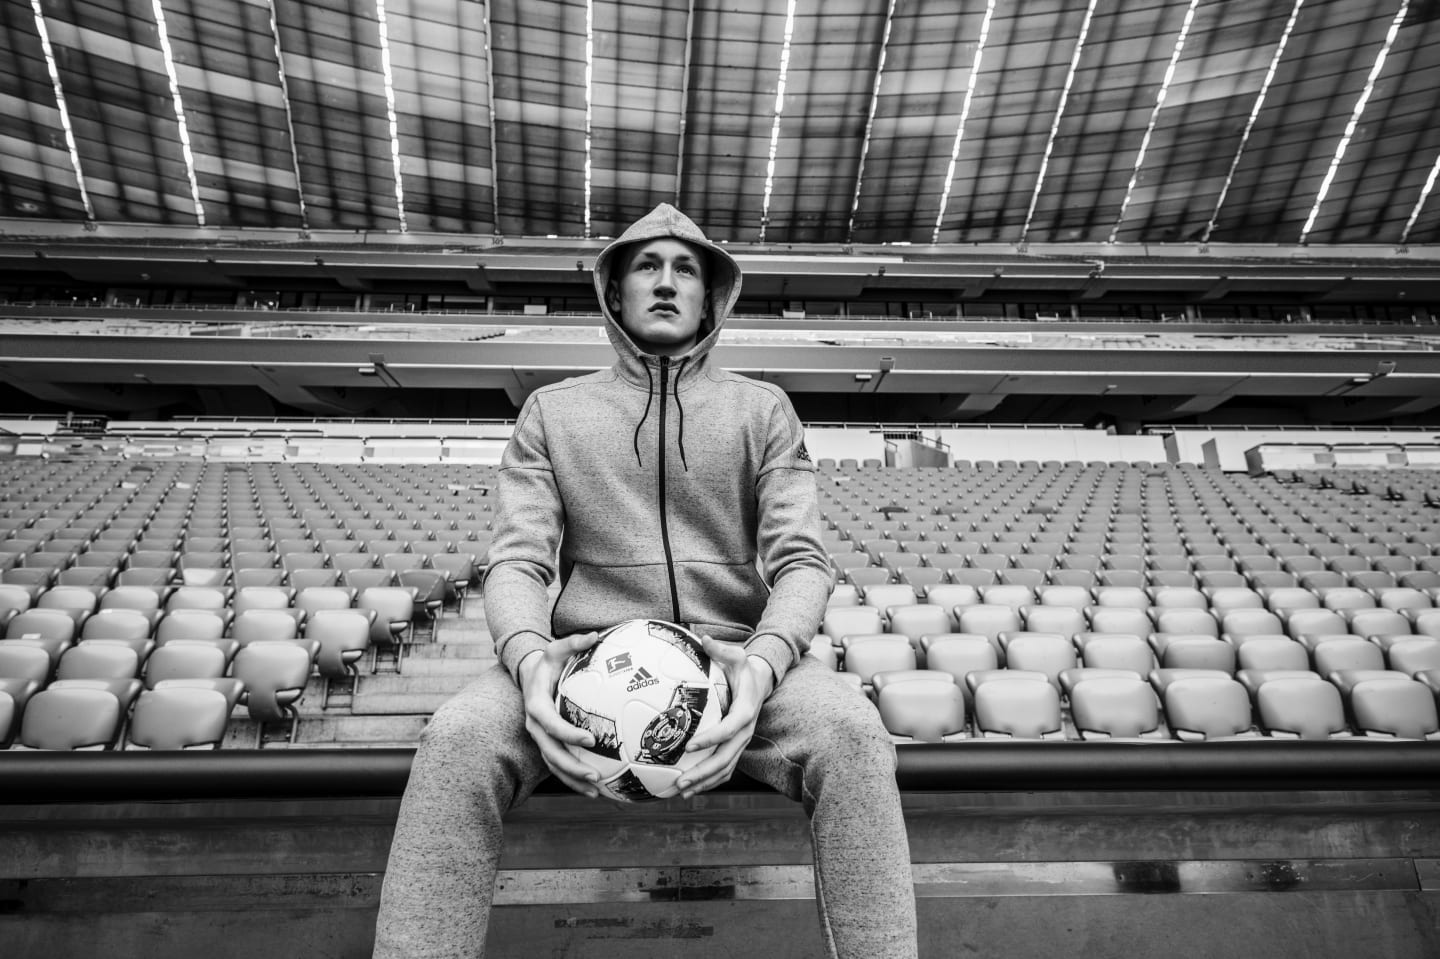 athlete-in-empty-arena-holding-ball-focusing-the-how-of-mental-strength